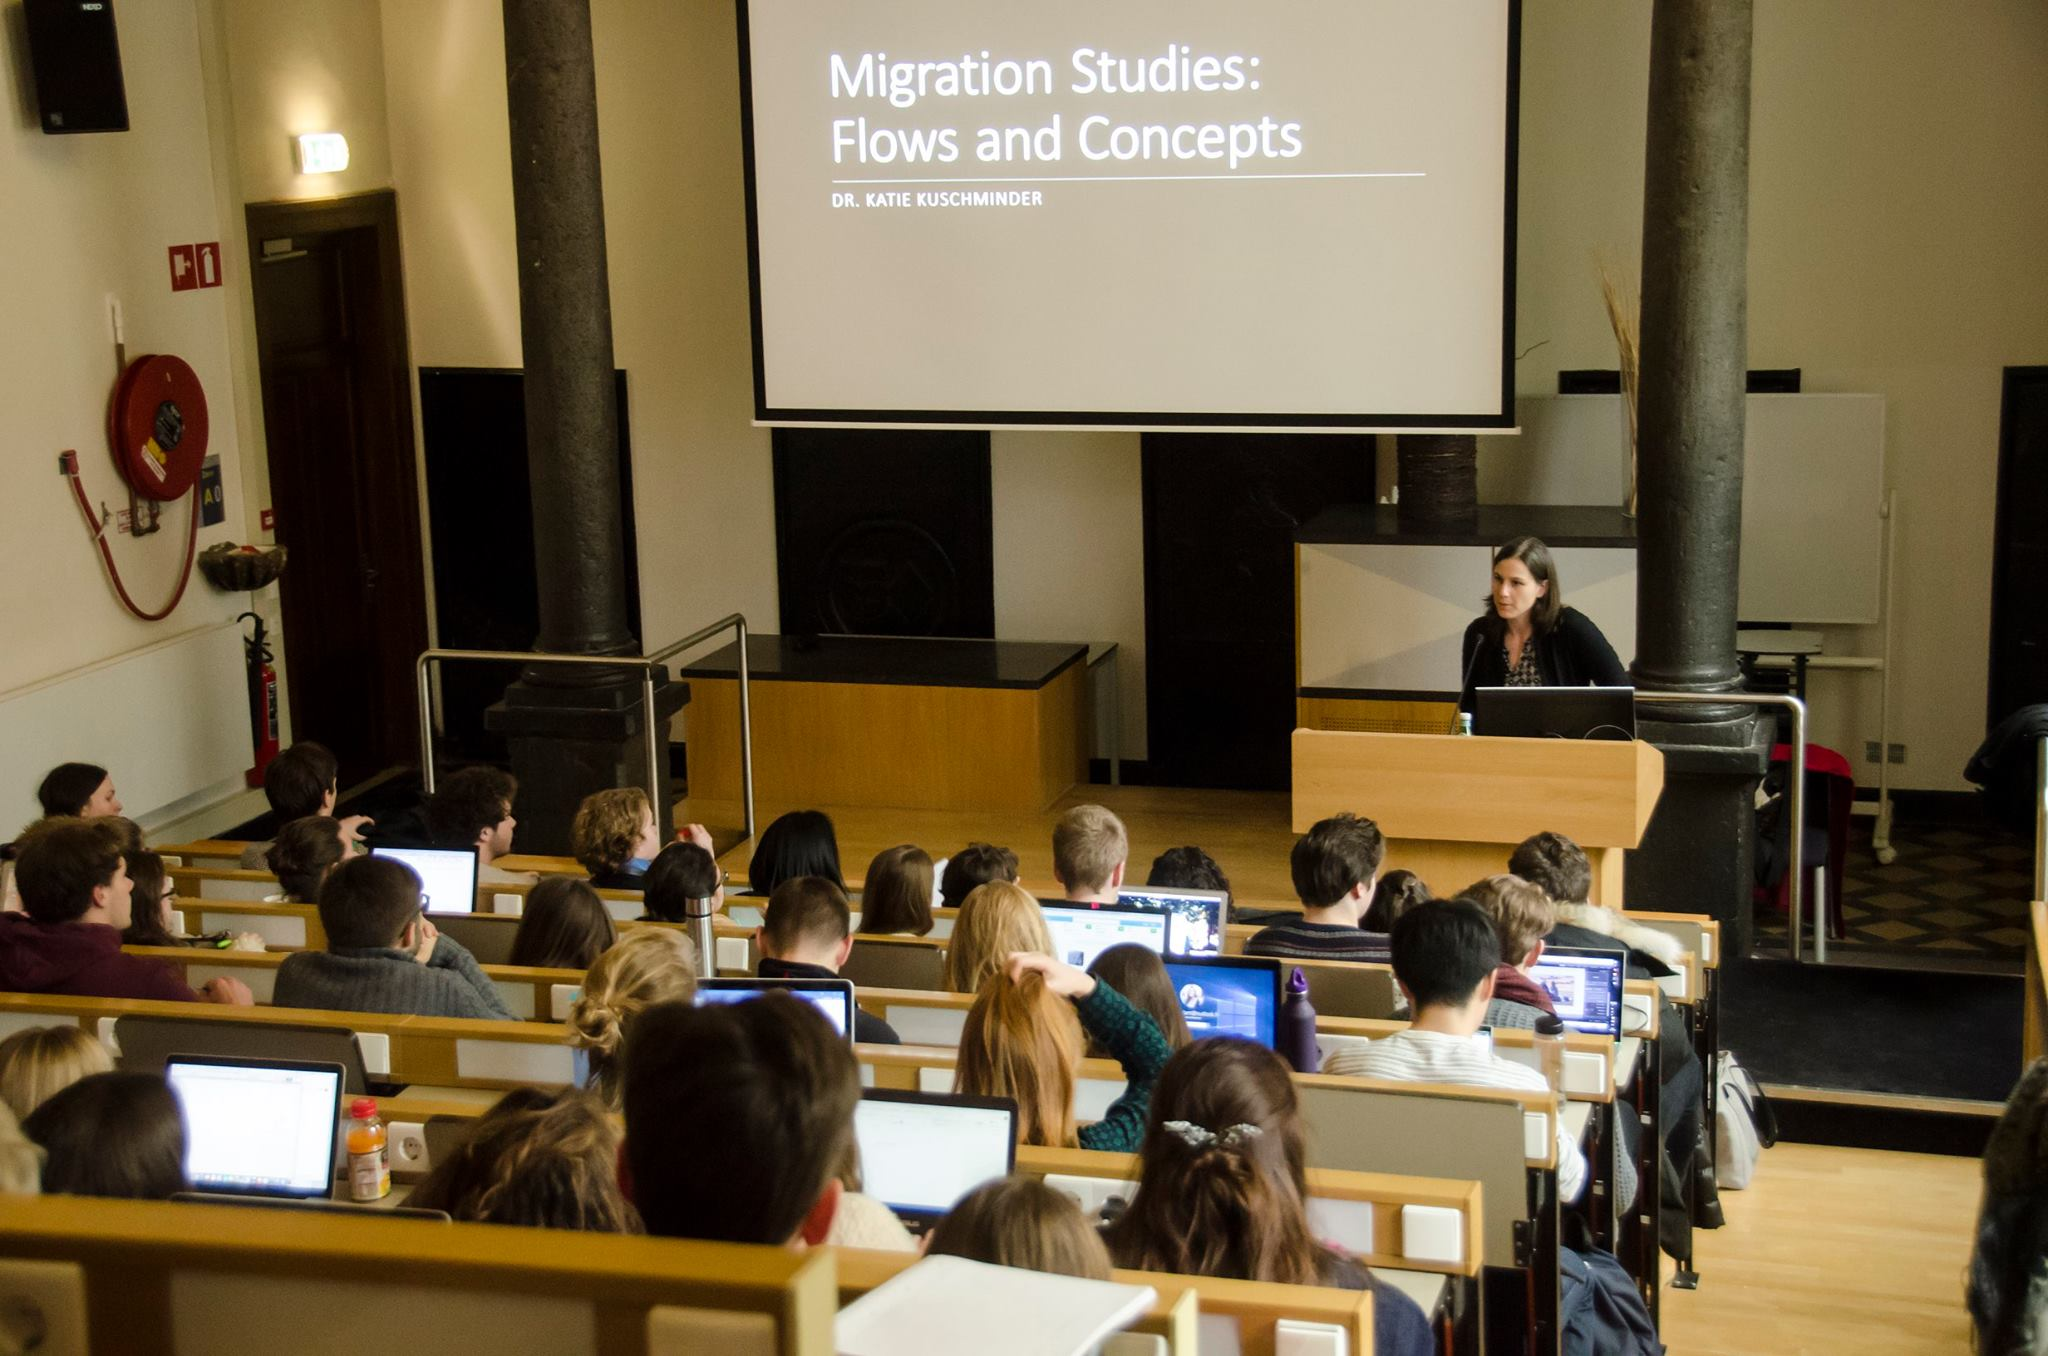 Launch of the First Migration Course at University College Maastricht